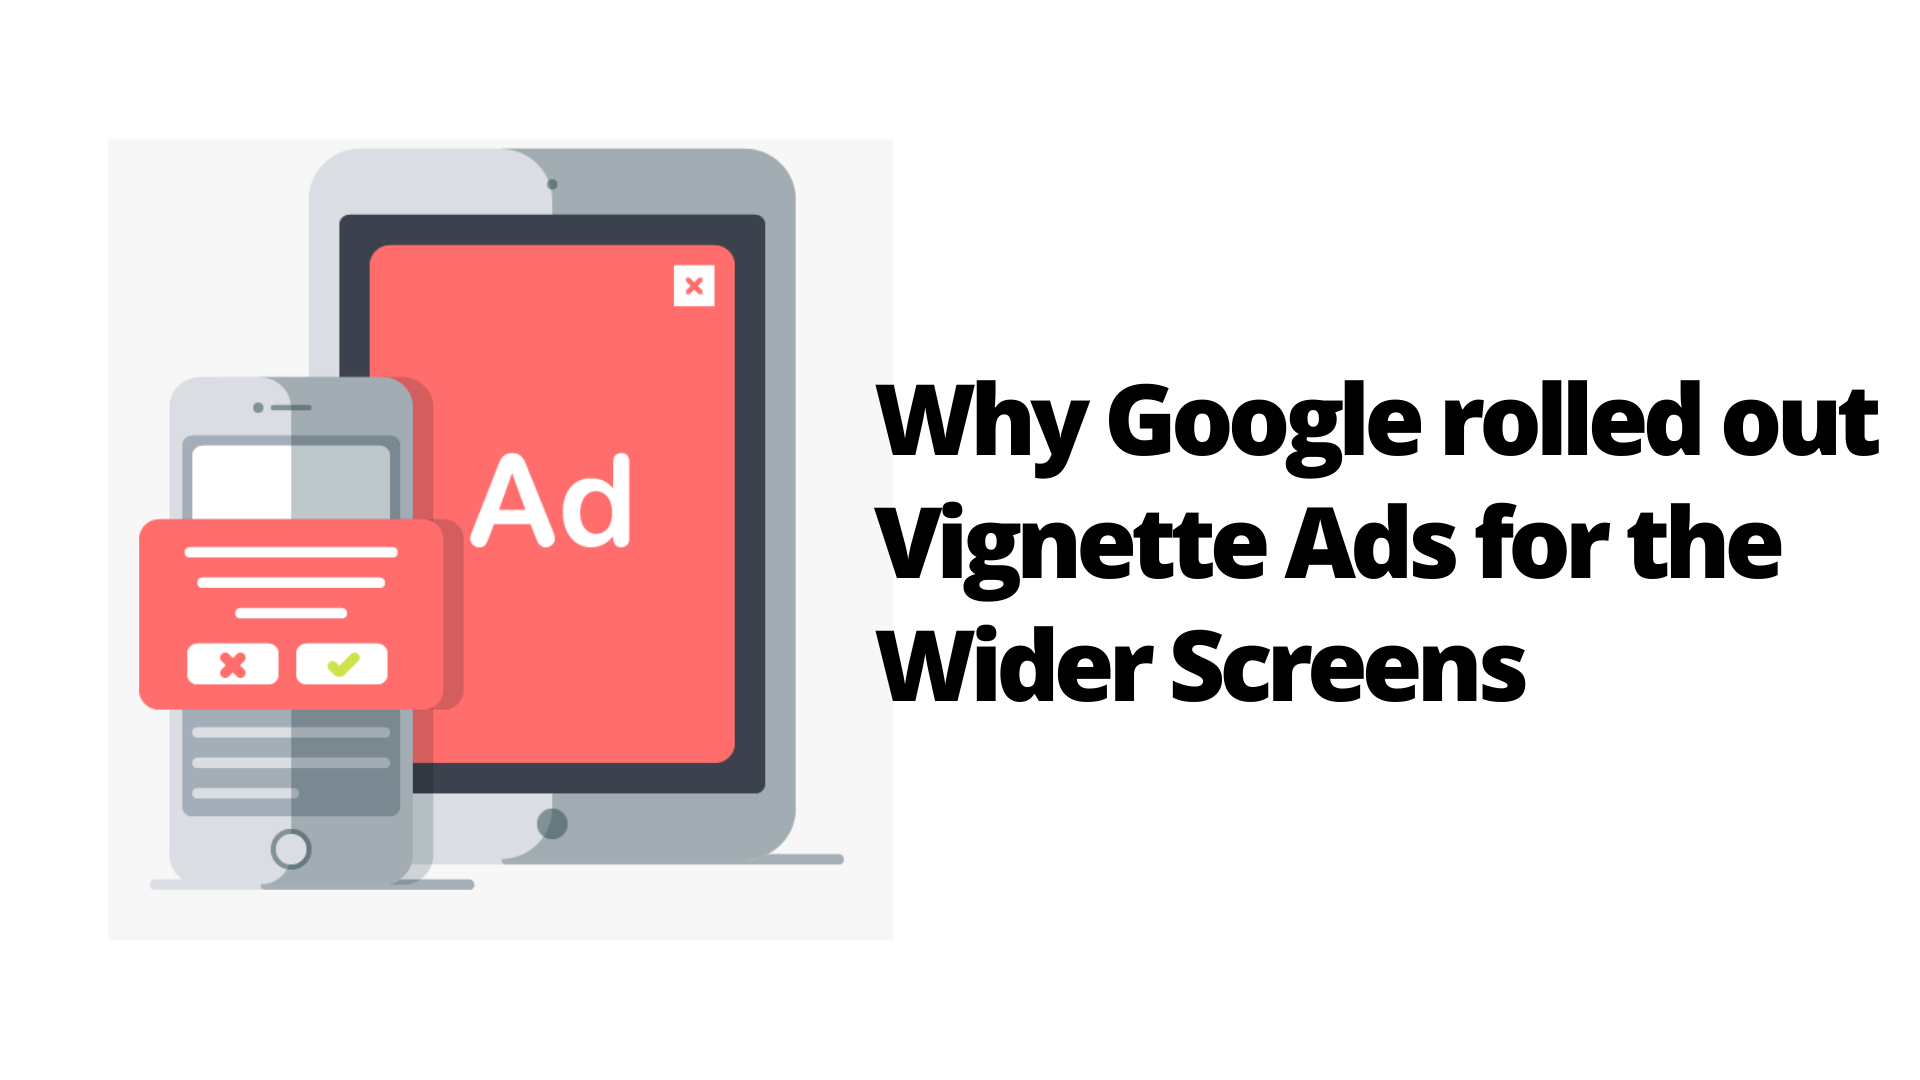 What are Vignette Ads?